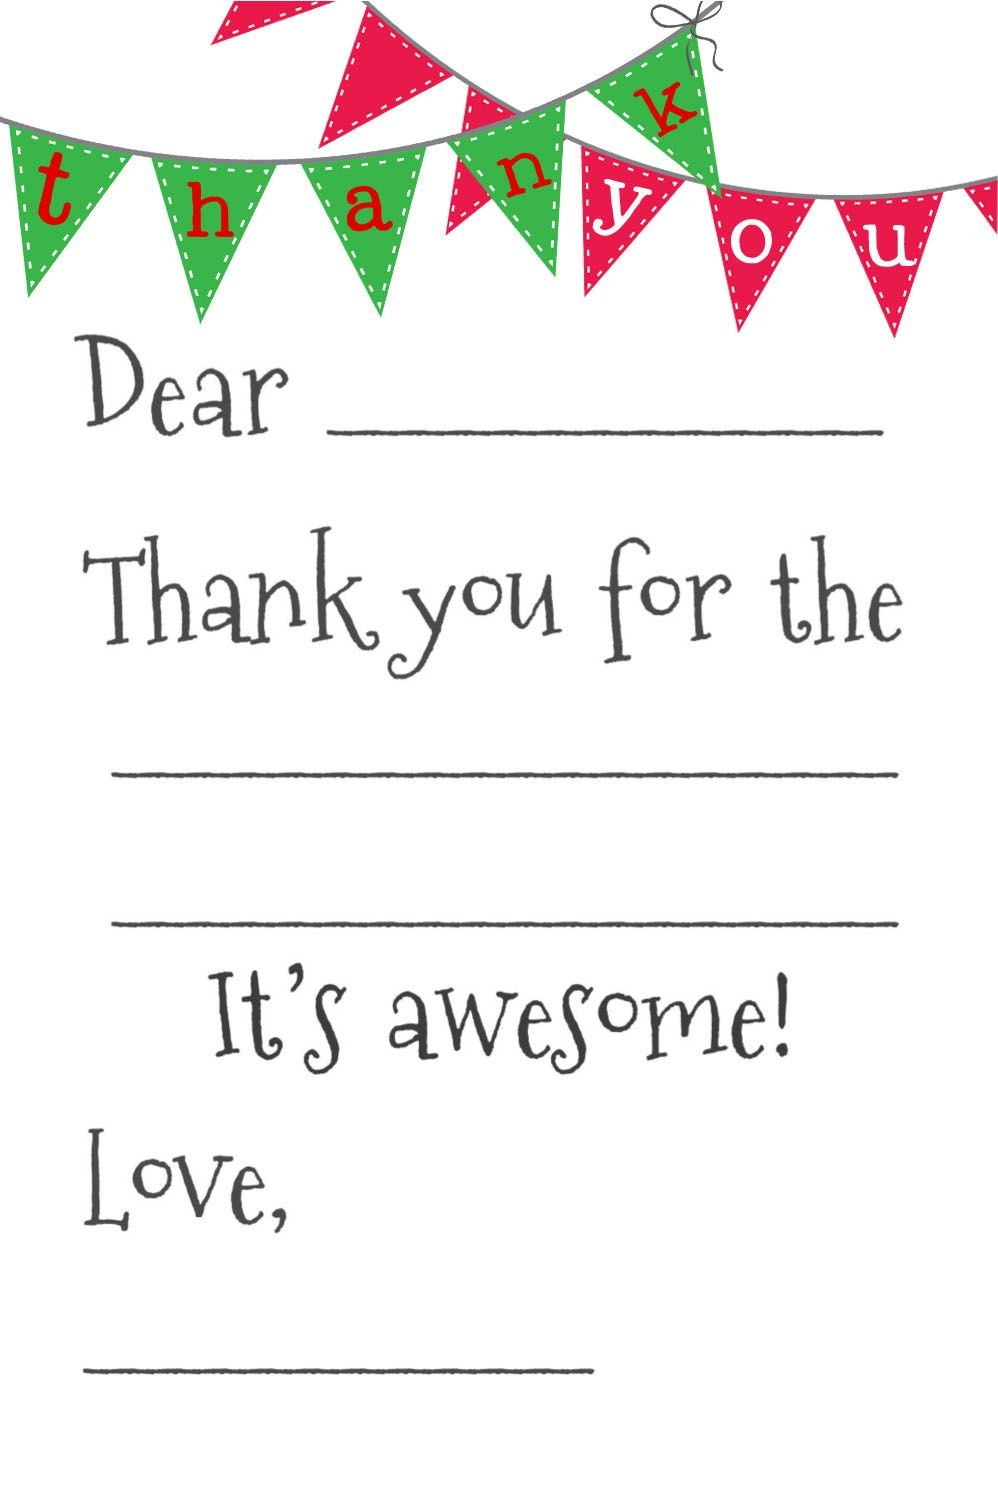 Free Fill-In-The-Blank Thank-You Cards | Printables | Free Thank You - Fill In The Blank Thank You Cards Printable Free